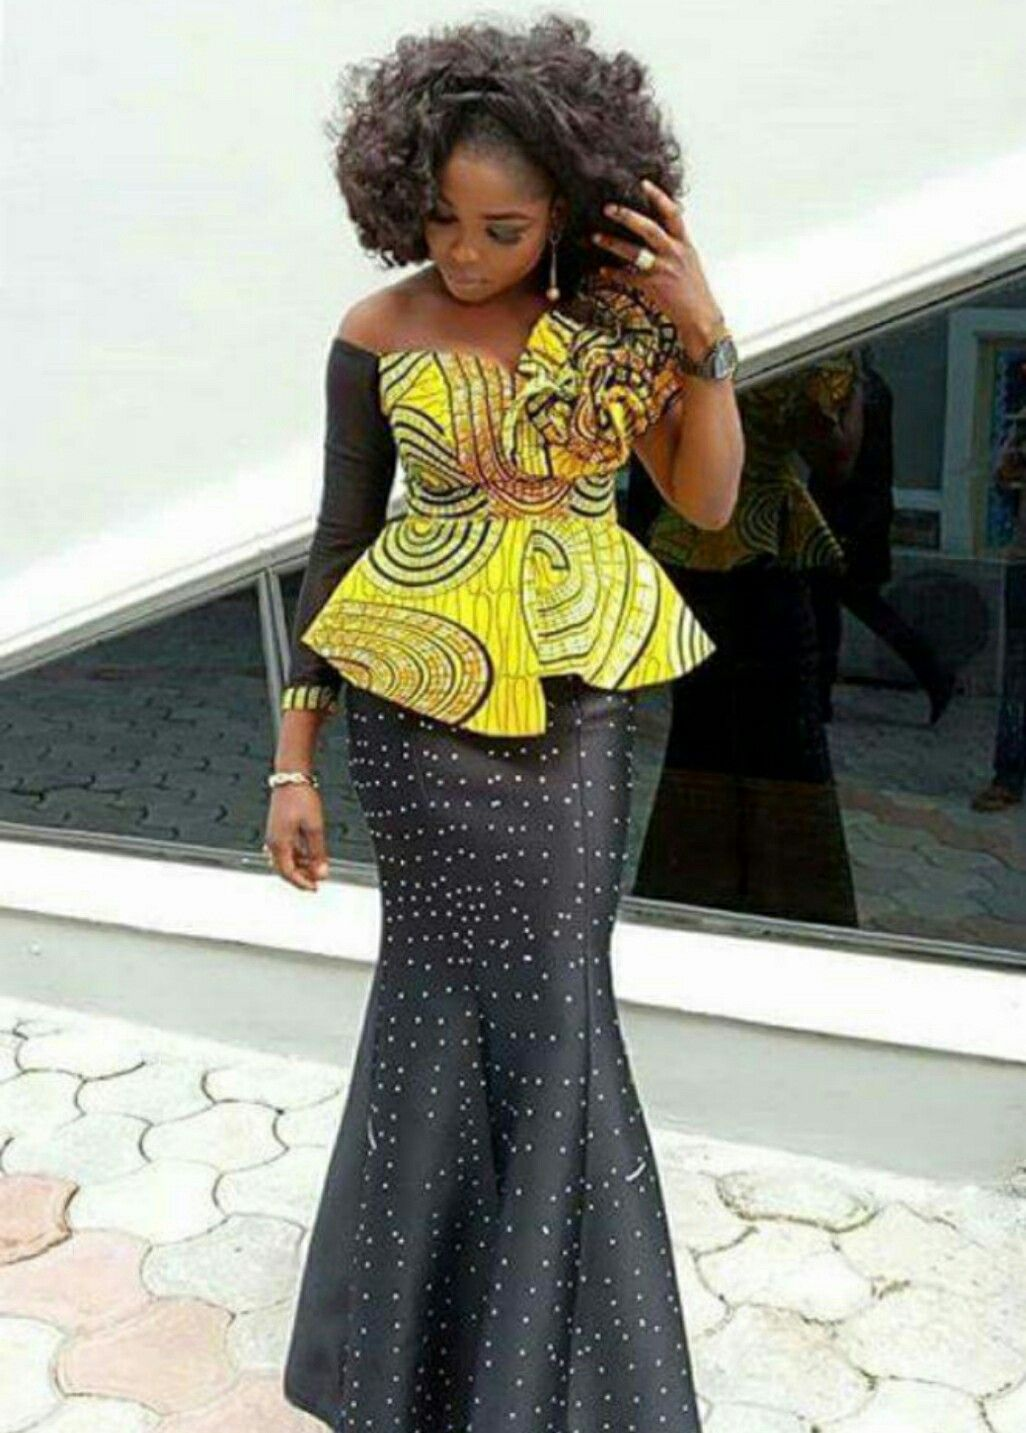 Styles Vestimentaires Africains, Modele Tenue Africaine, Model Pagne  Africain, Mode Africaine Robe,